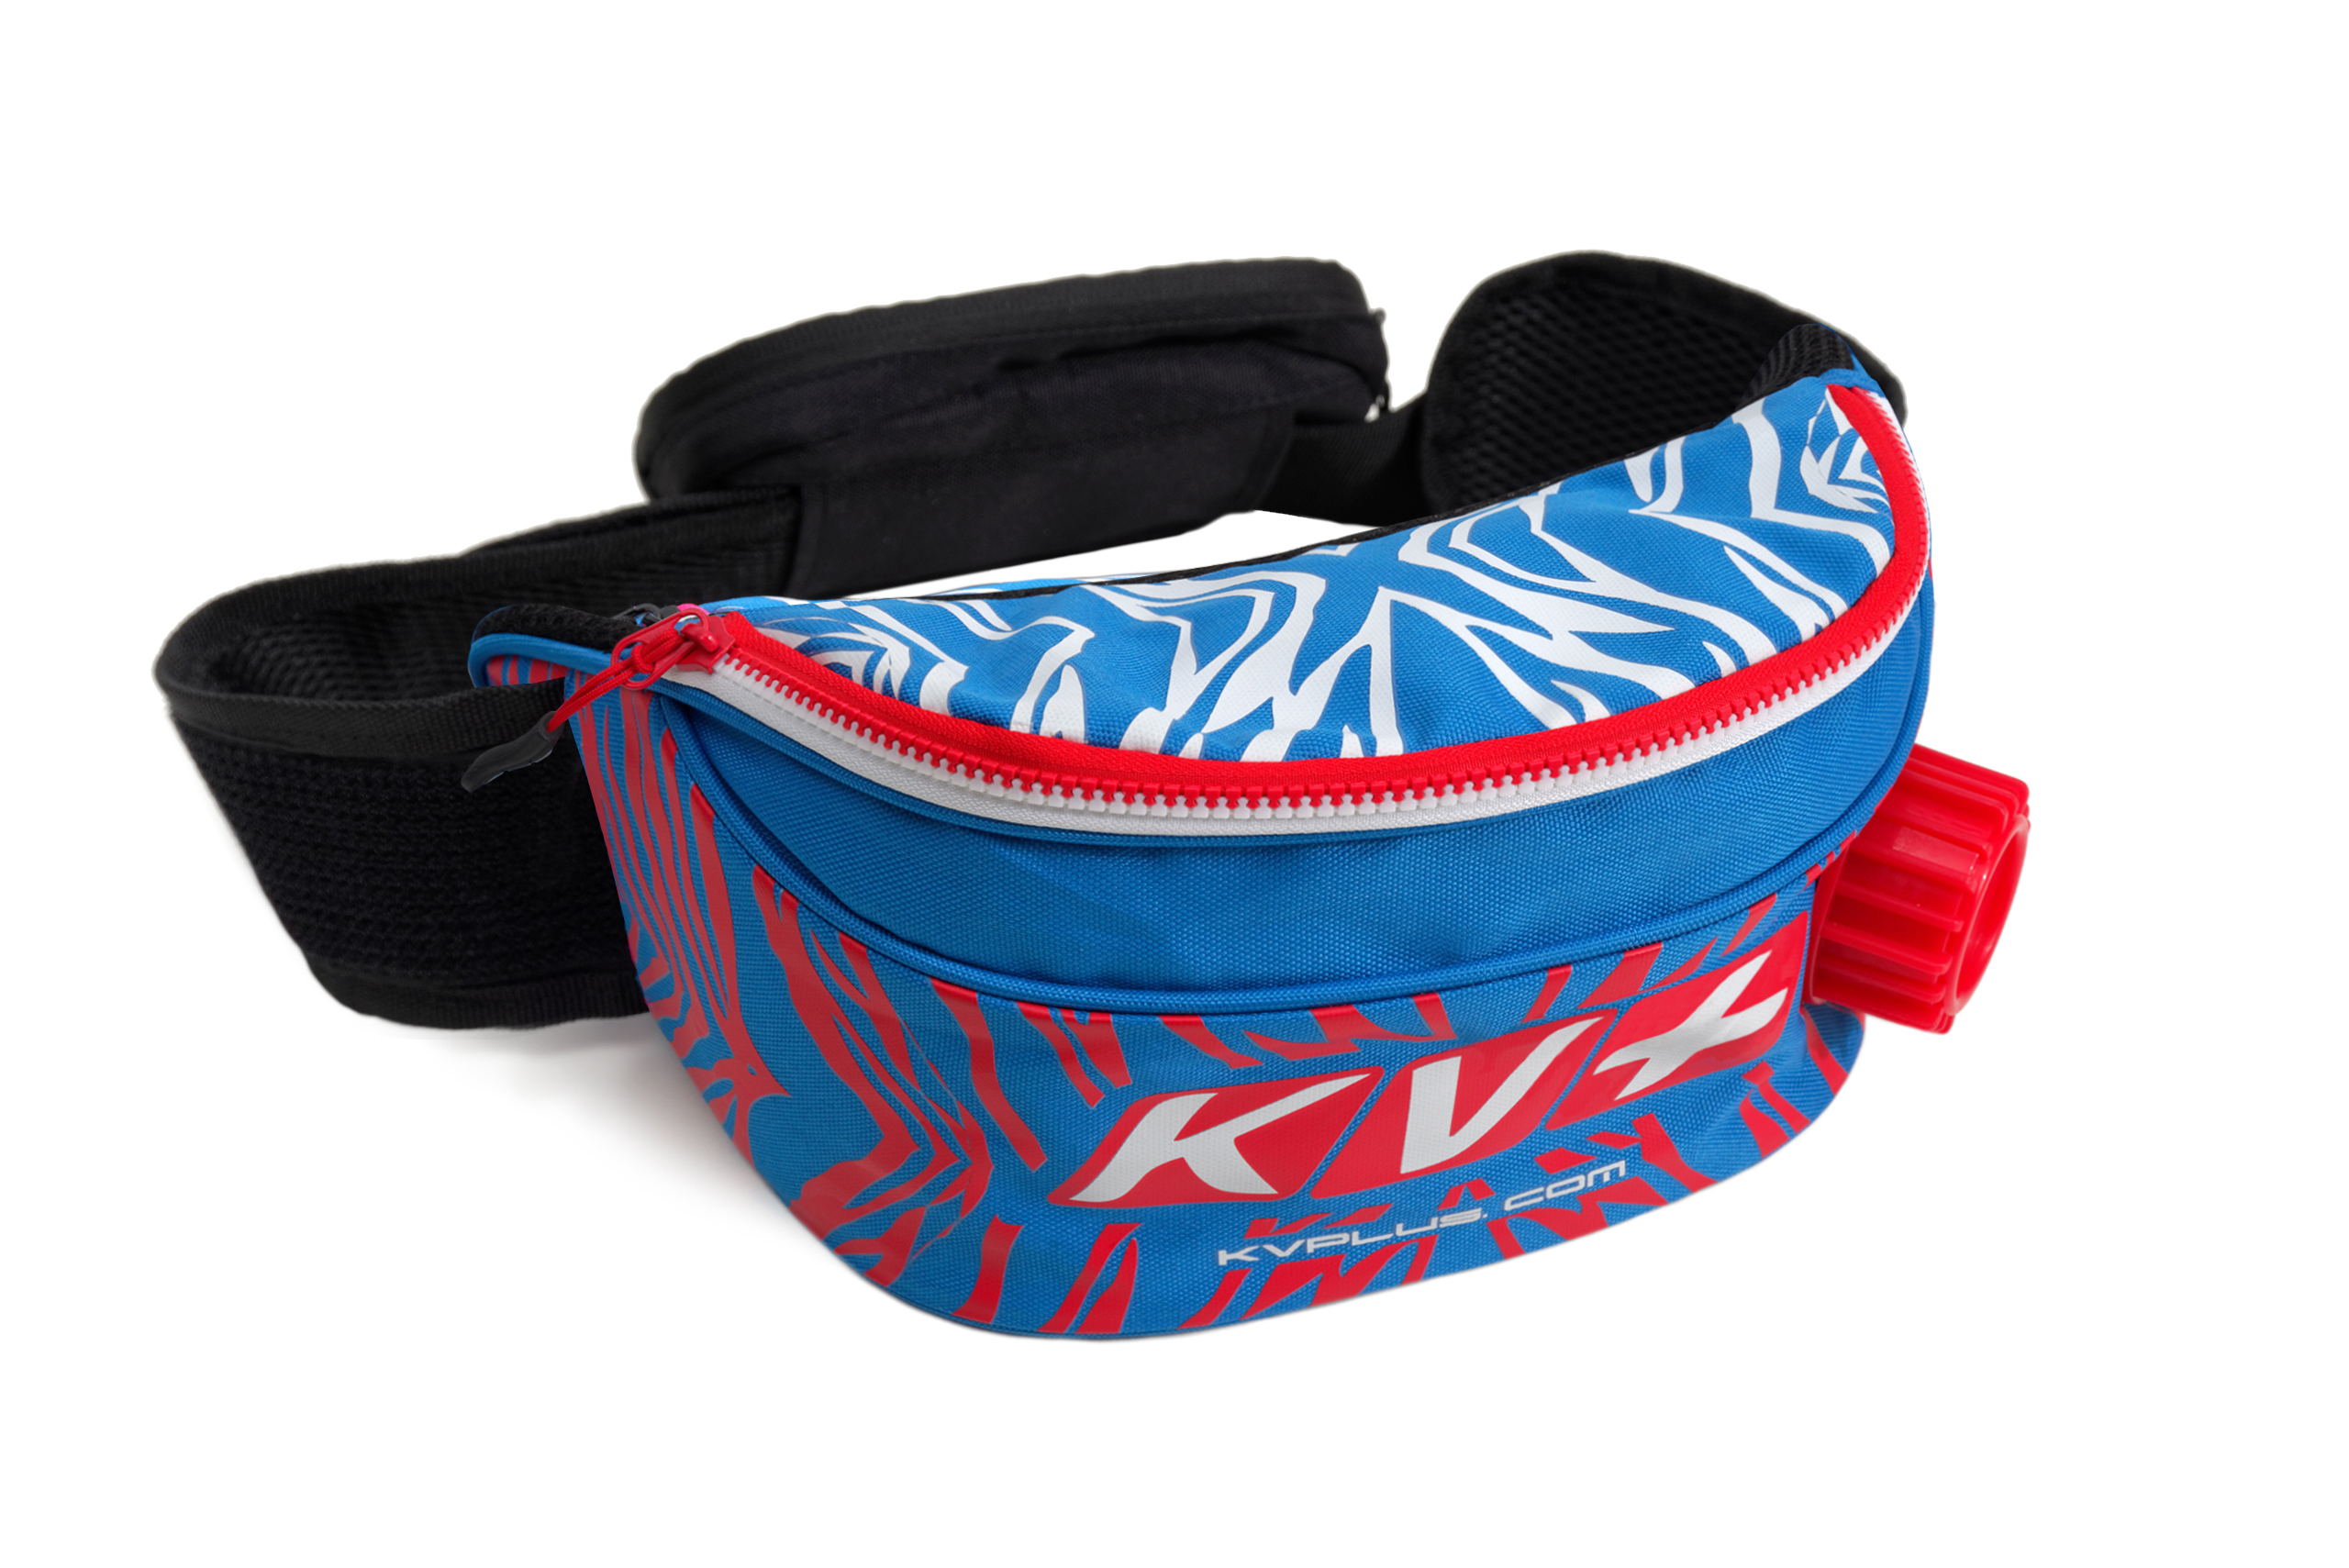 EXTRA THERMO WAIST BAG